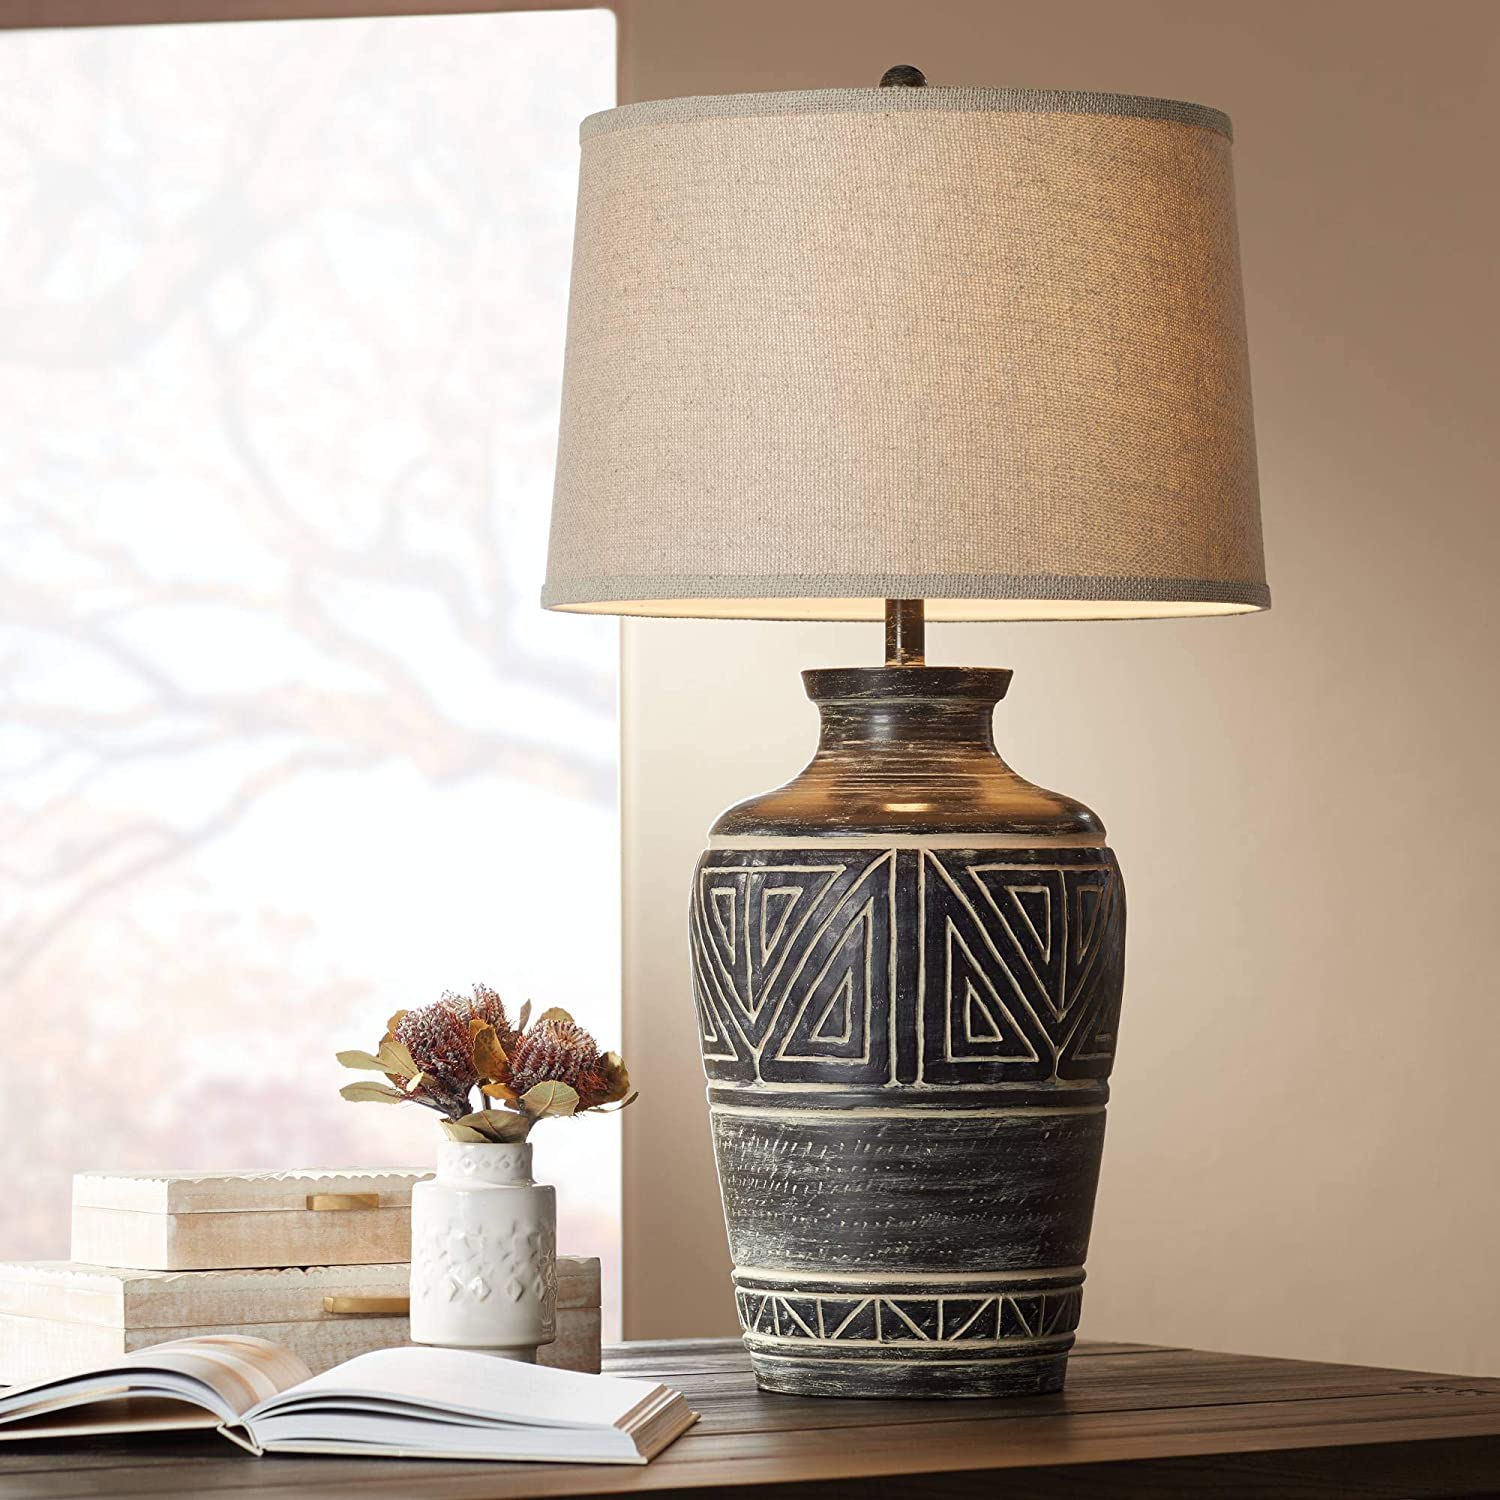 Miguel Rustic Southwestern Style Table Lamp Earth Tone Jar Linen Fabric Drum Shade Decor for Living Room Bedroom House Bedside Nightstand Home Office Entryway Reading Family - John Timberland